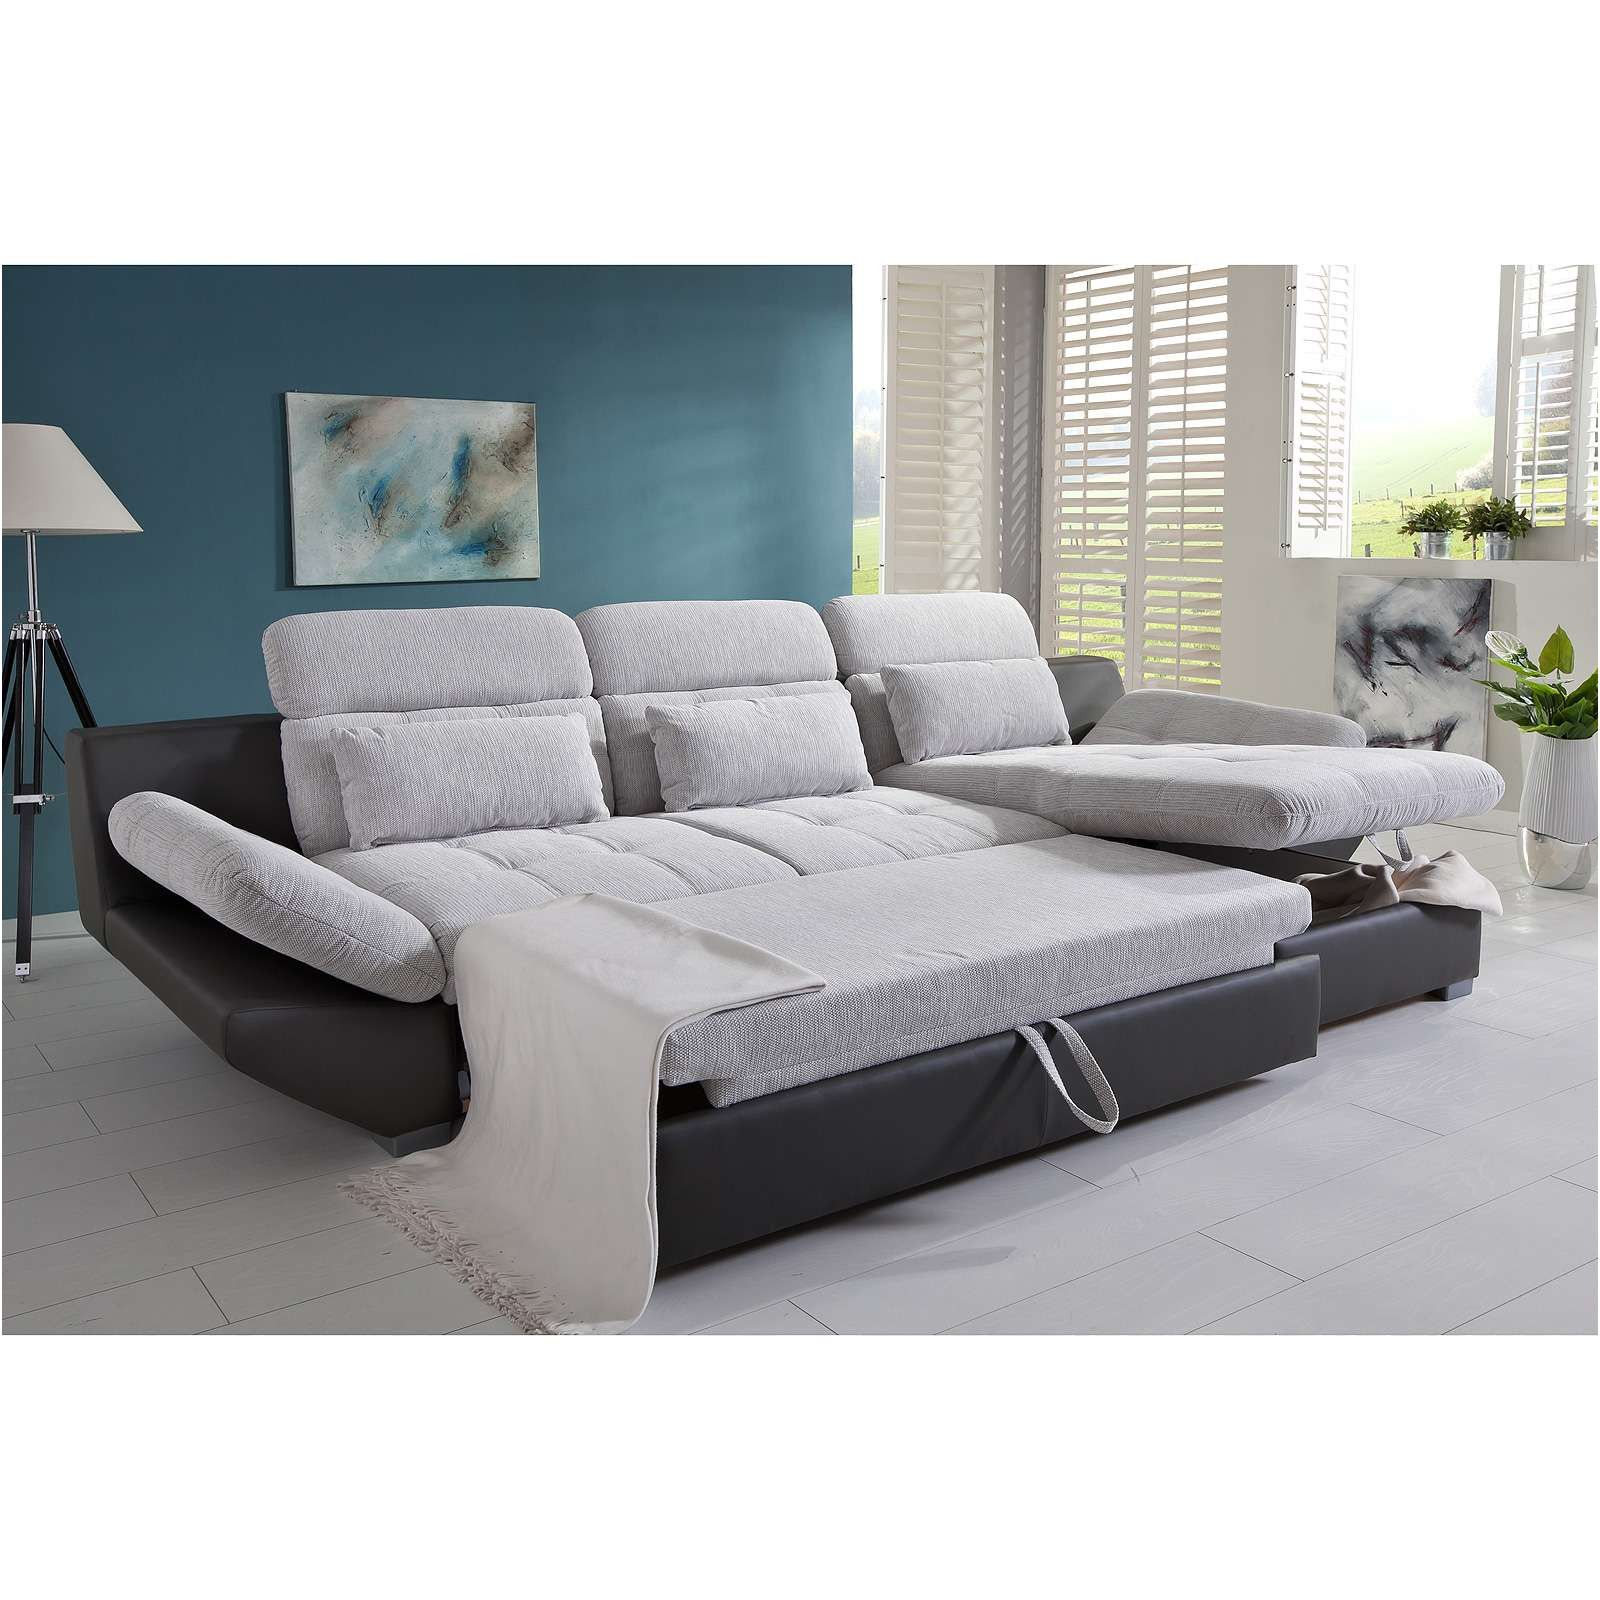 Ideal Otto Versand Möbel Sofa Home Decor Sectional Couch Home